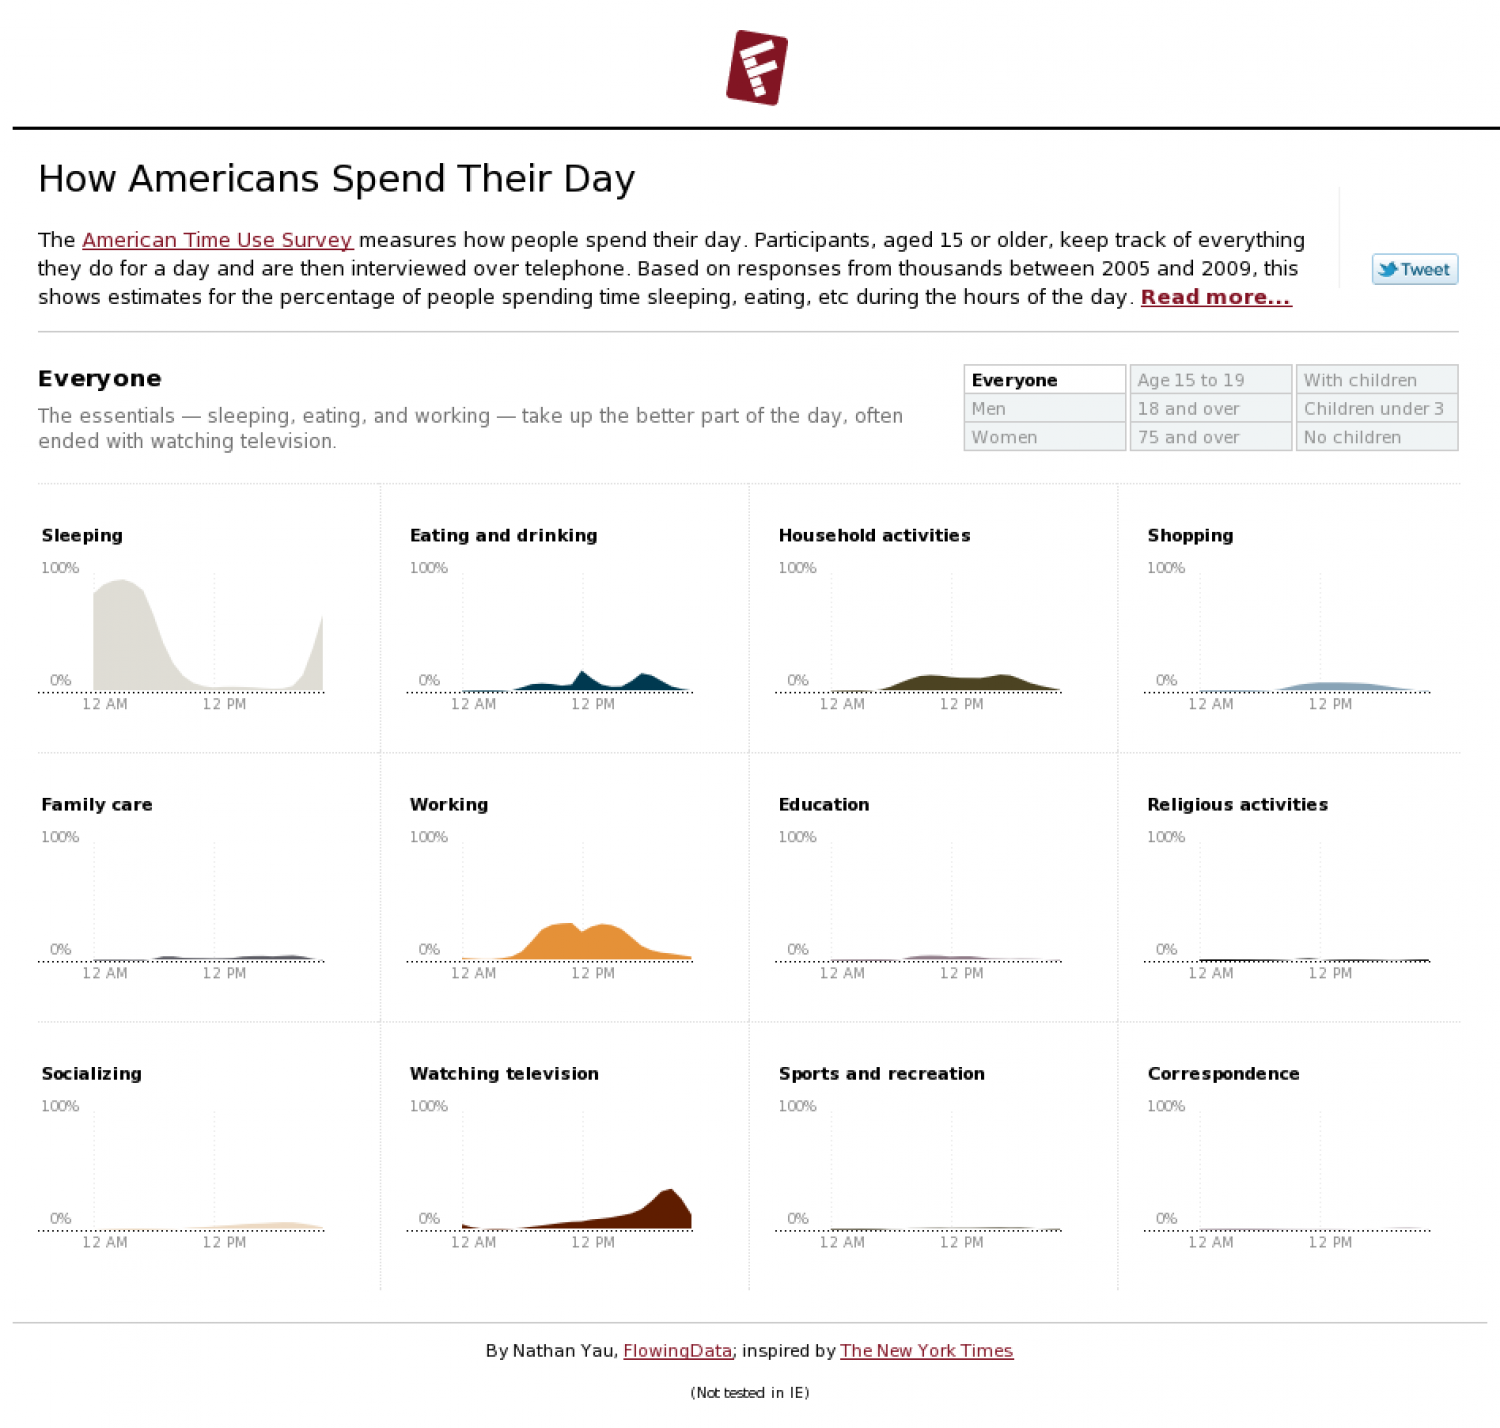 How Americans Spend Their Day Infographic